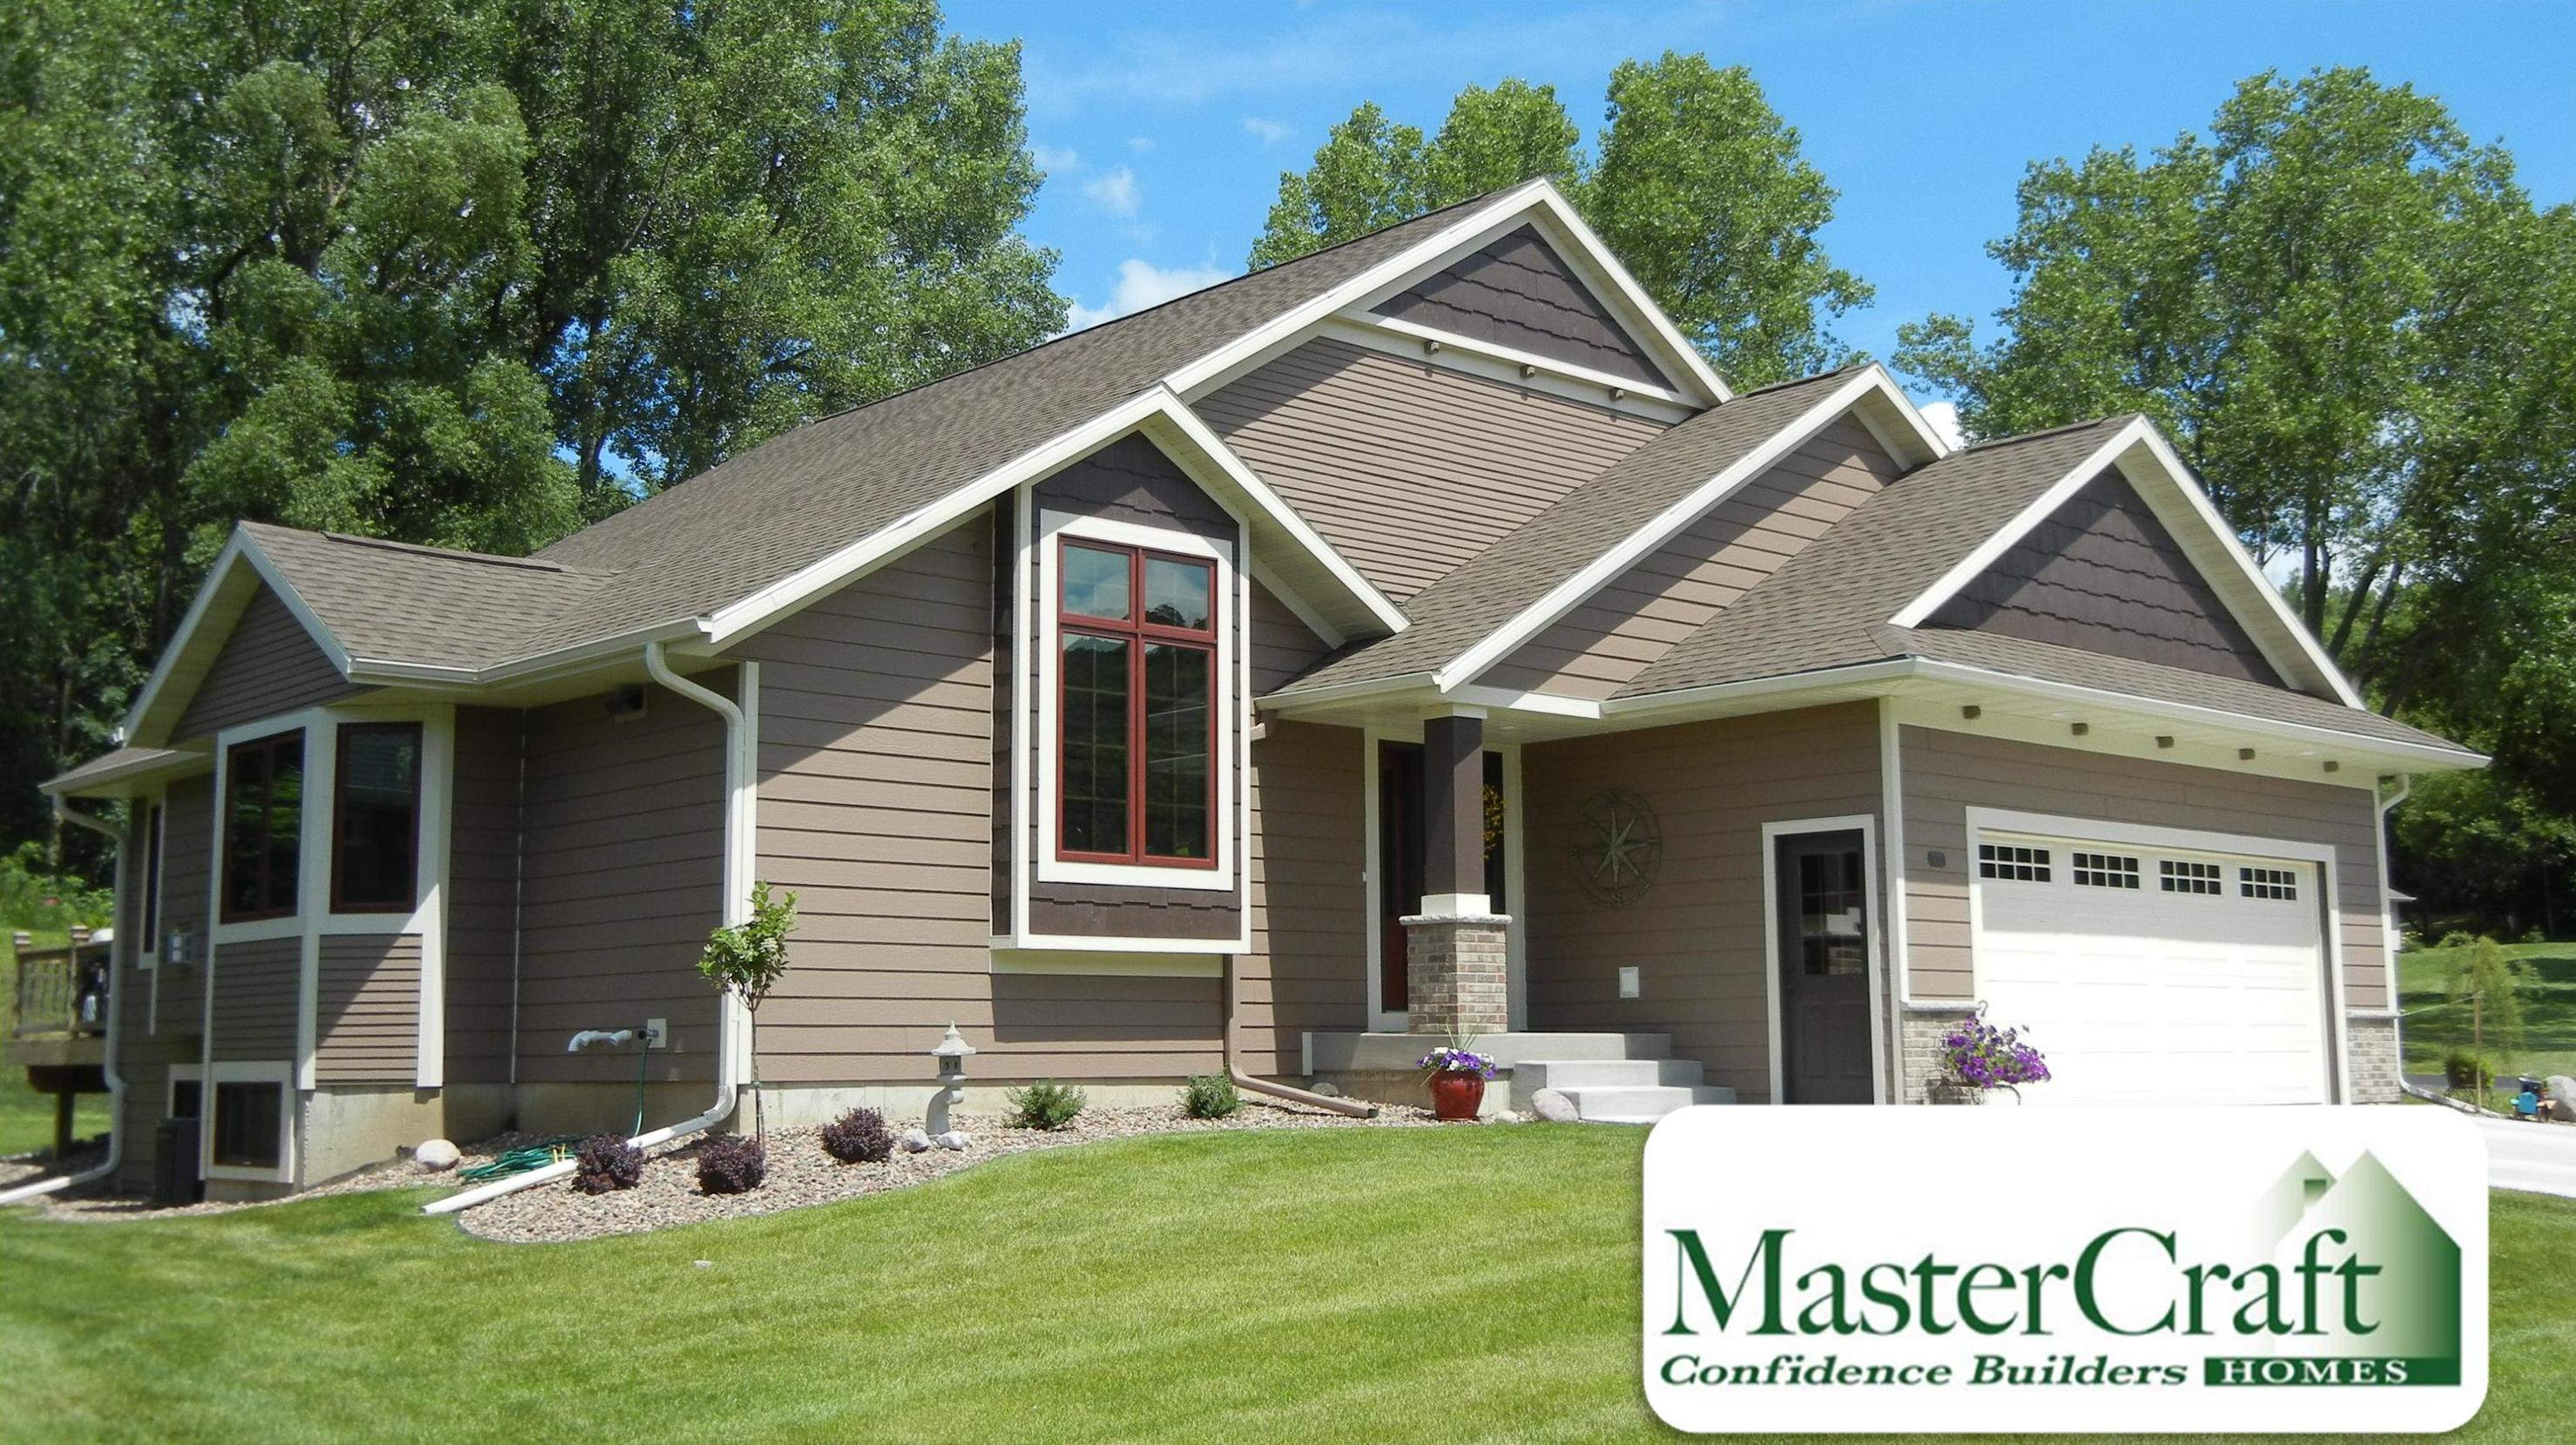 mastercraft home design sacramento home design and style home water cistern design Water Barrel